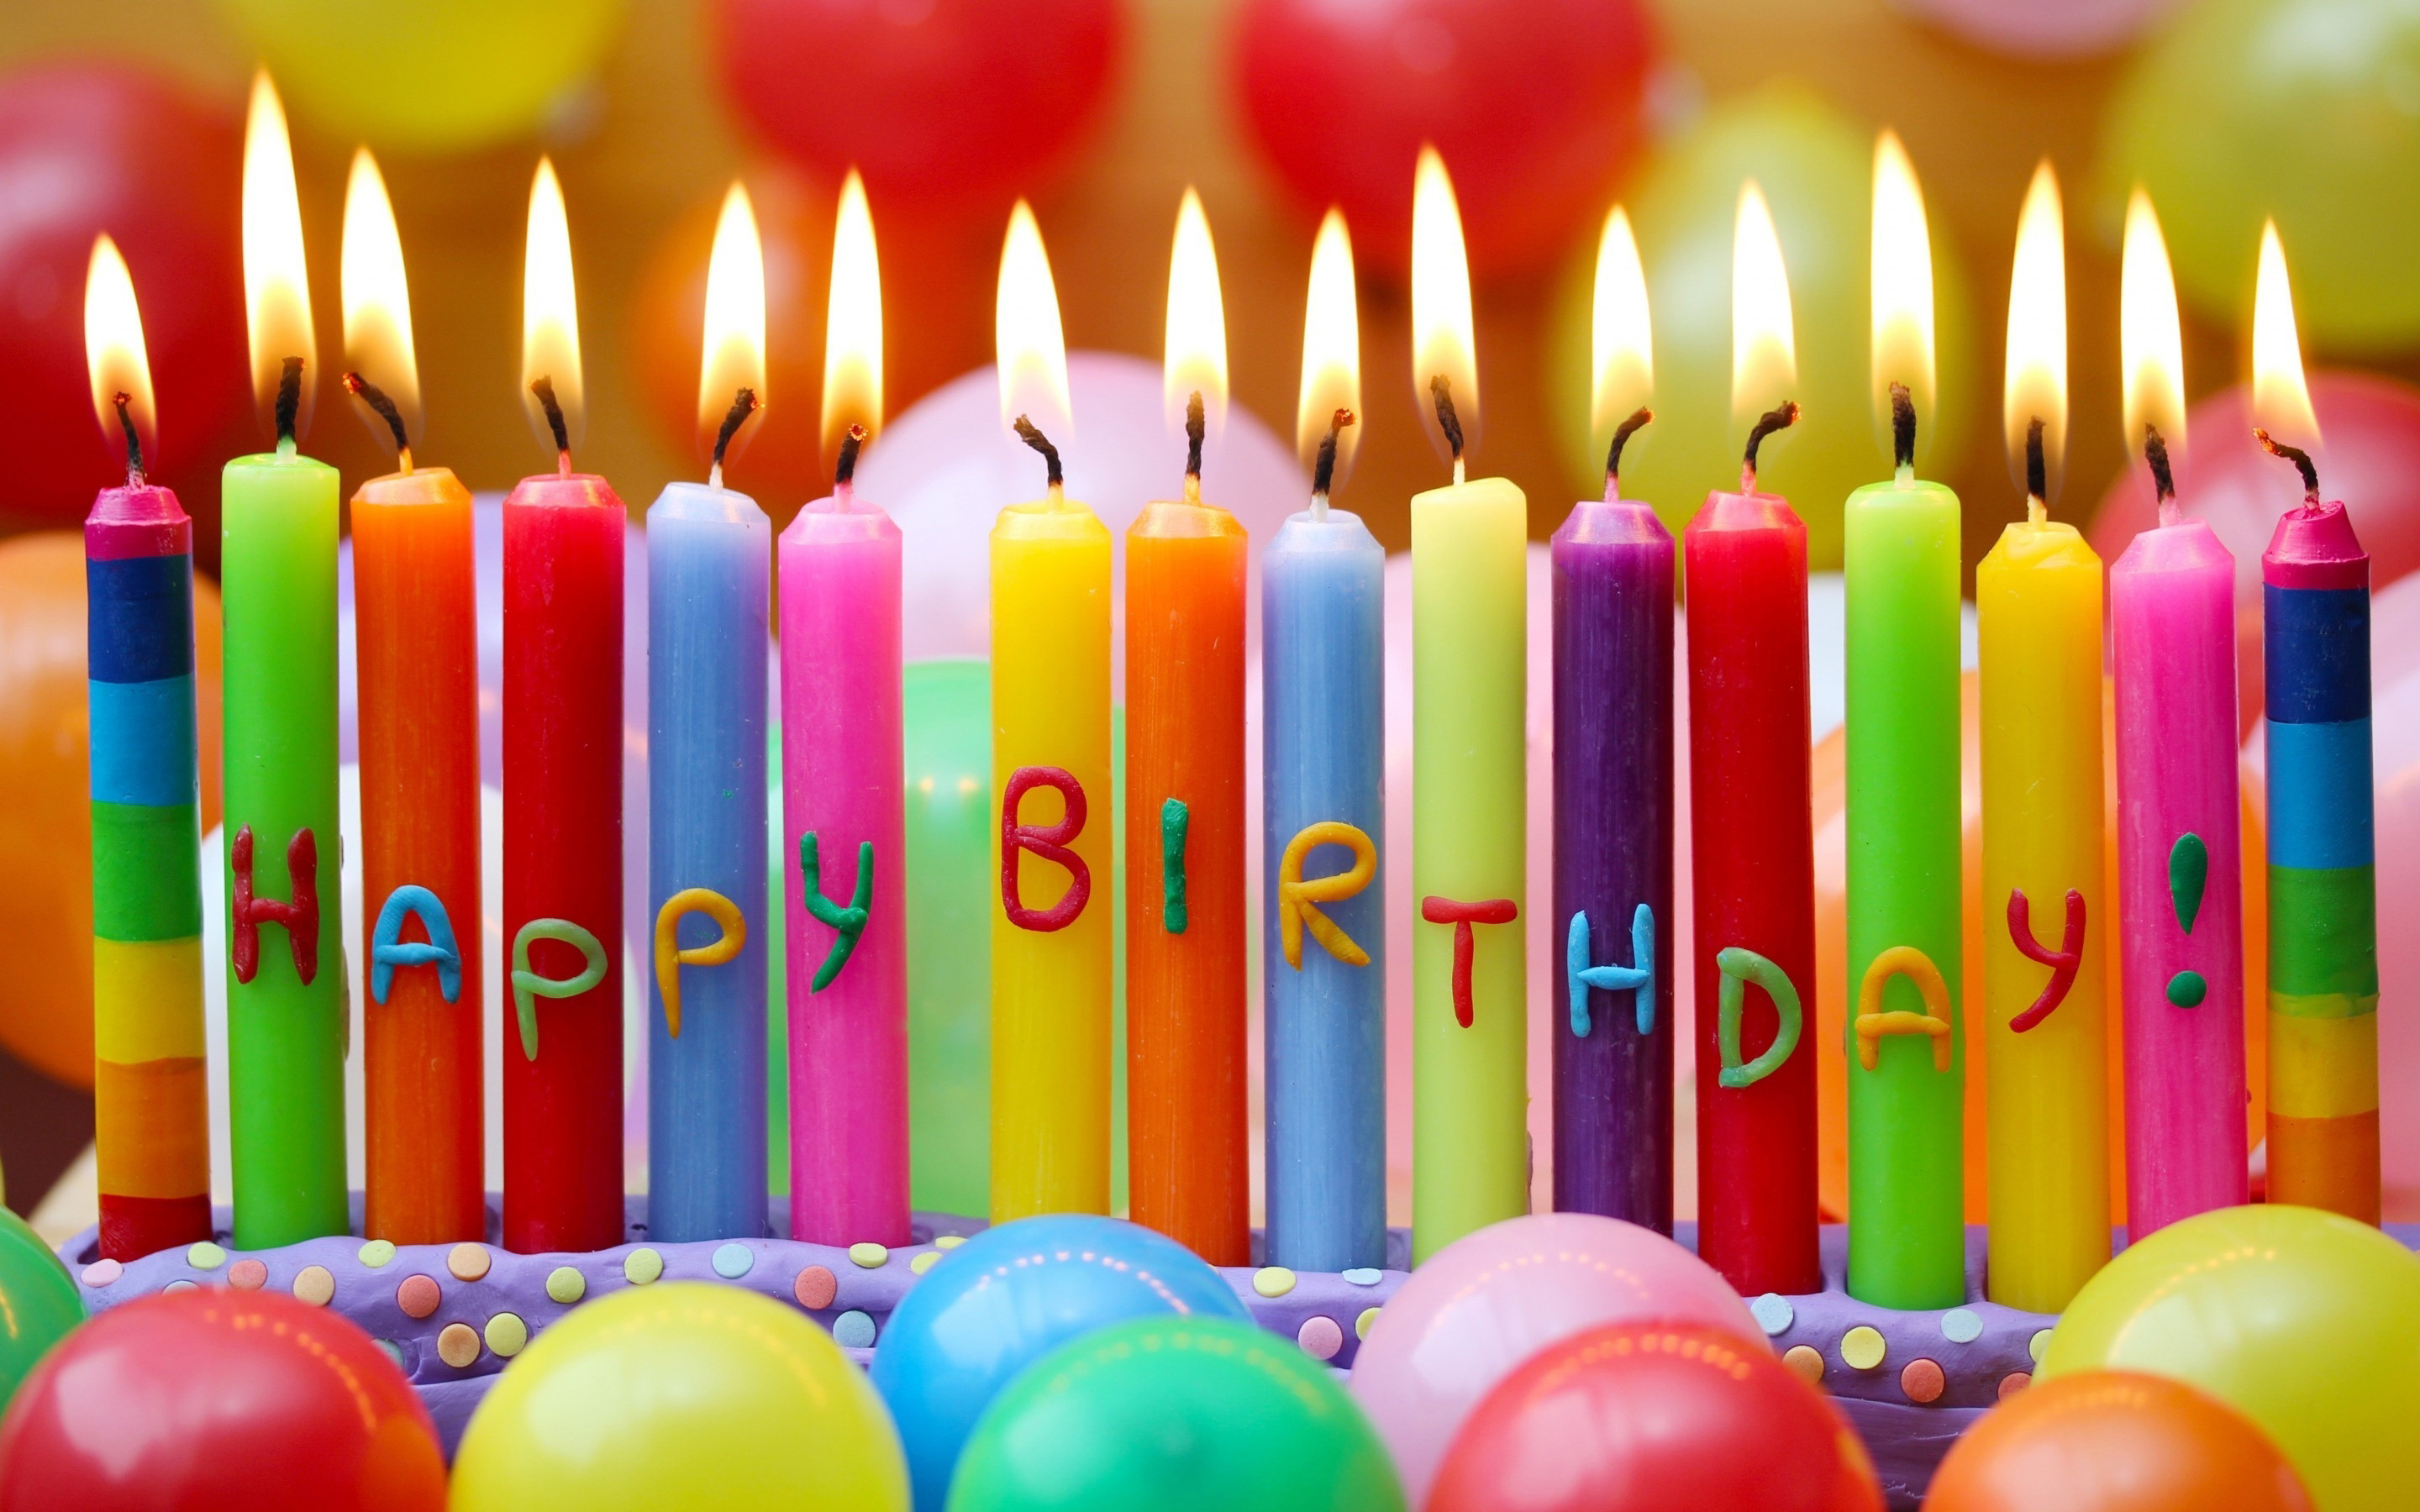 Res: 2880x1800, Creative Birthday Celebration Images with Colorful Candles